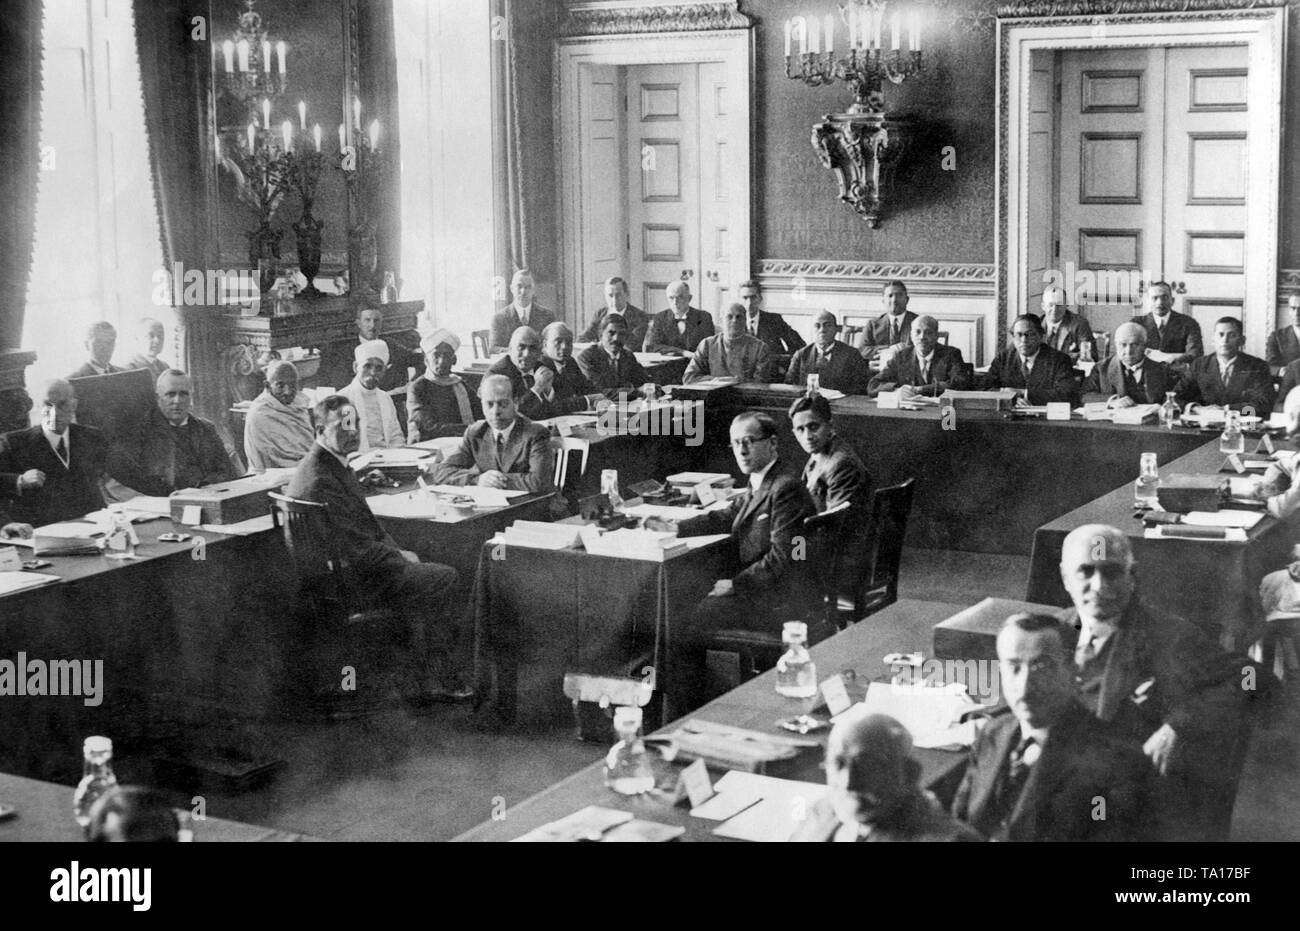 This shot shows the Indian Round Table Conference at St. James's Palace in London. Third from the left on the conference table Mahatma Gandhi, on the left next to him the chairman Lord Sankey. Gandhi was nominated several times for the Nobel Peace Prize during his lifetime. Stock Photo